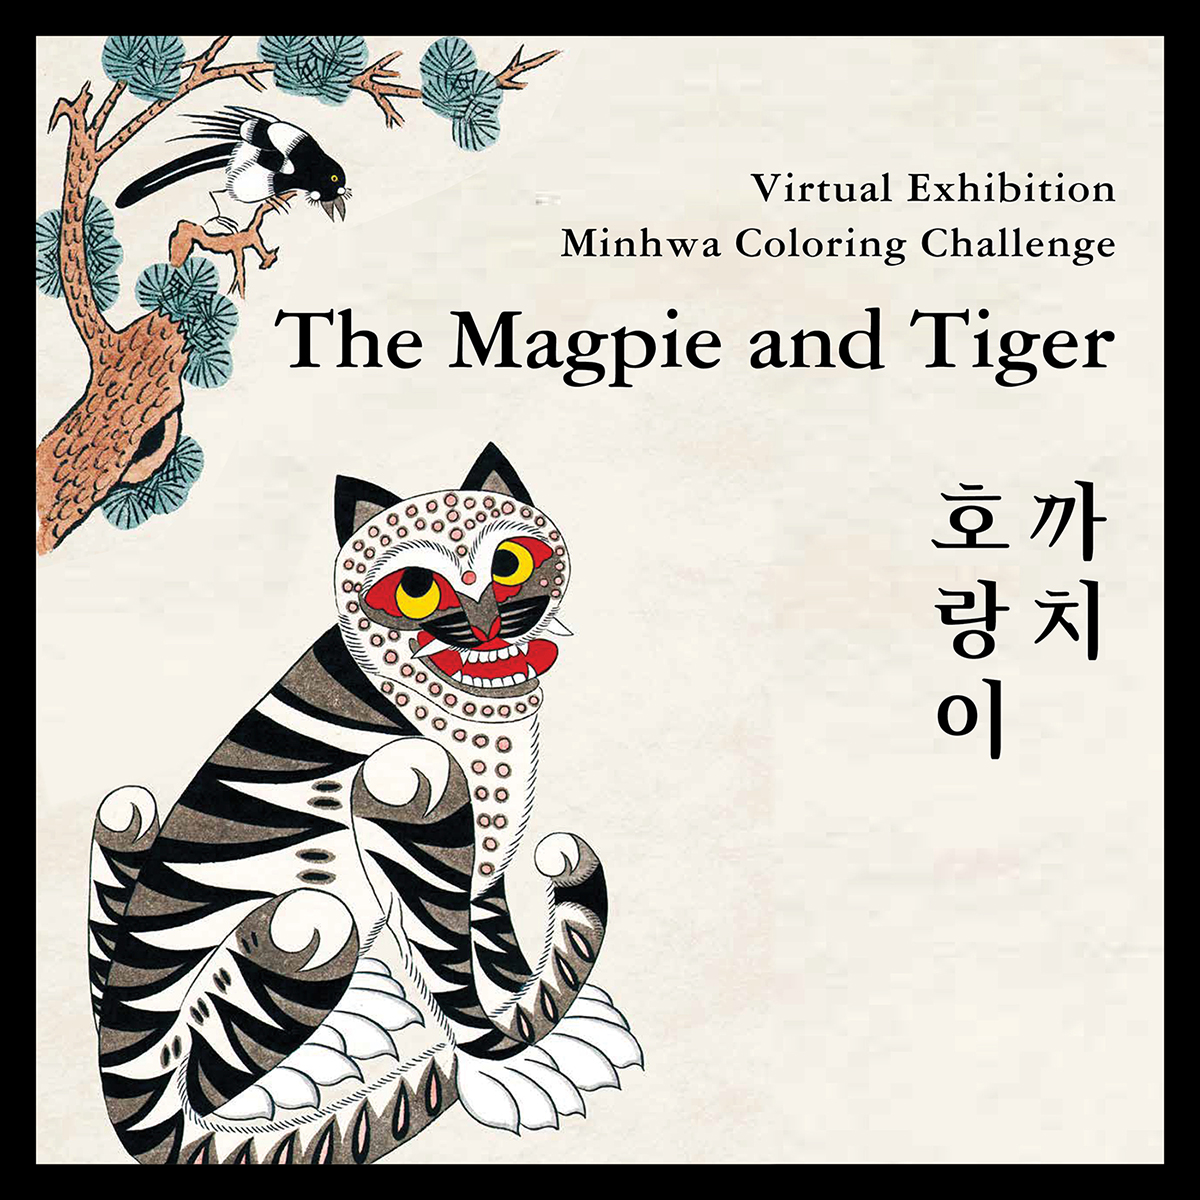 Minhwa Coloring Challenge Virtual Exhibition